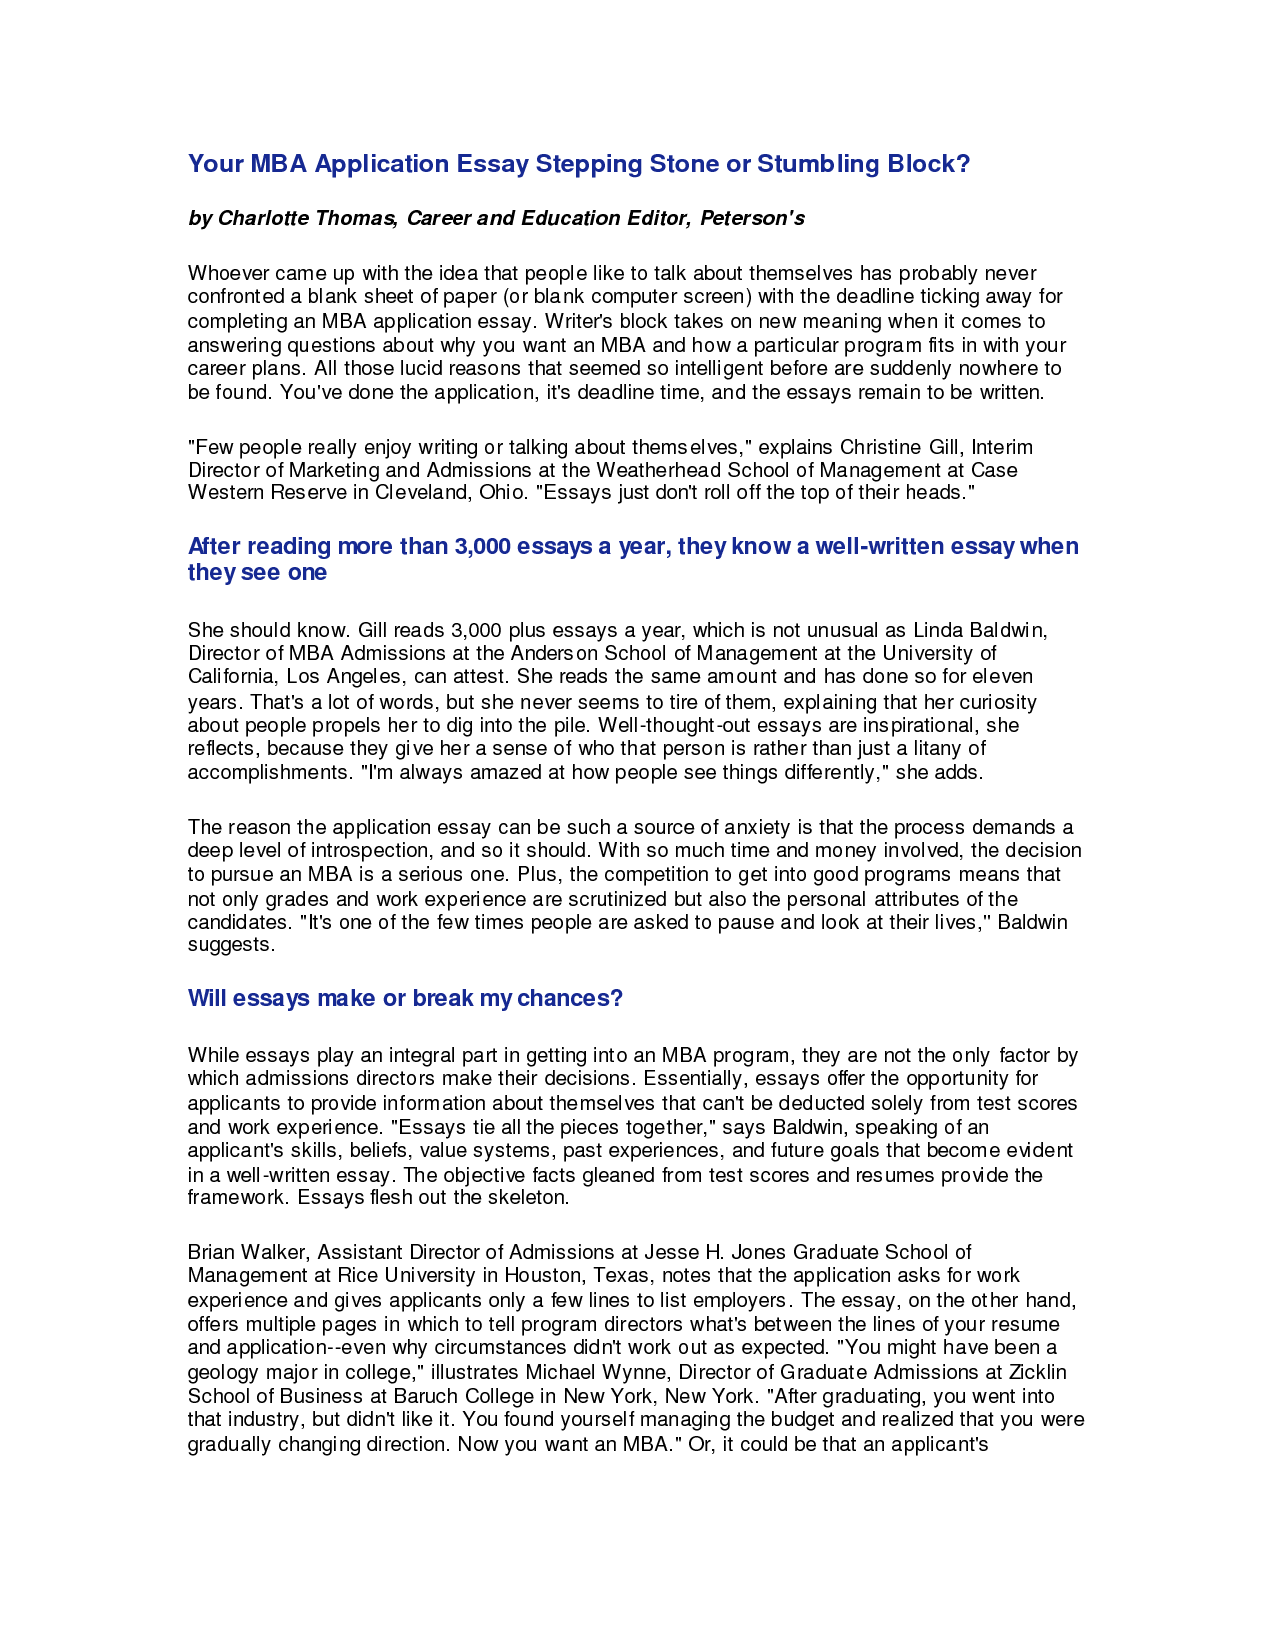 harvard mba essays 2015 48 new interview questions from the class of 2018 190+coverpage harbus interview guide 2016 total actual interview questions that current harvard business school students were asked in their admissions 'interviews' expanded analysis and commentary on how to approach the 'interview' questions admissions.